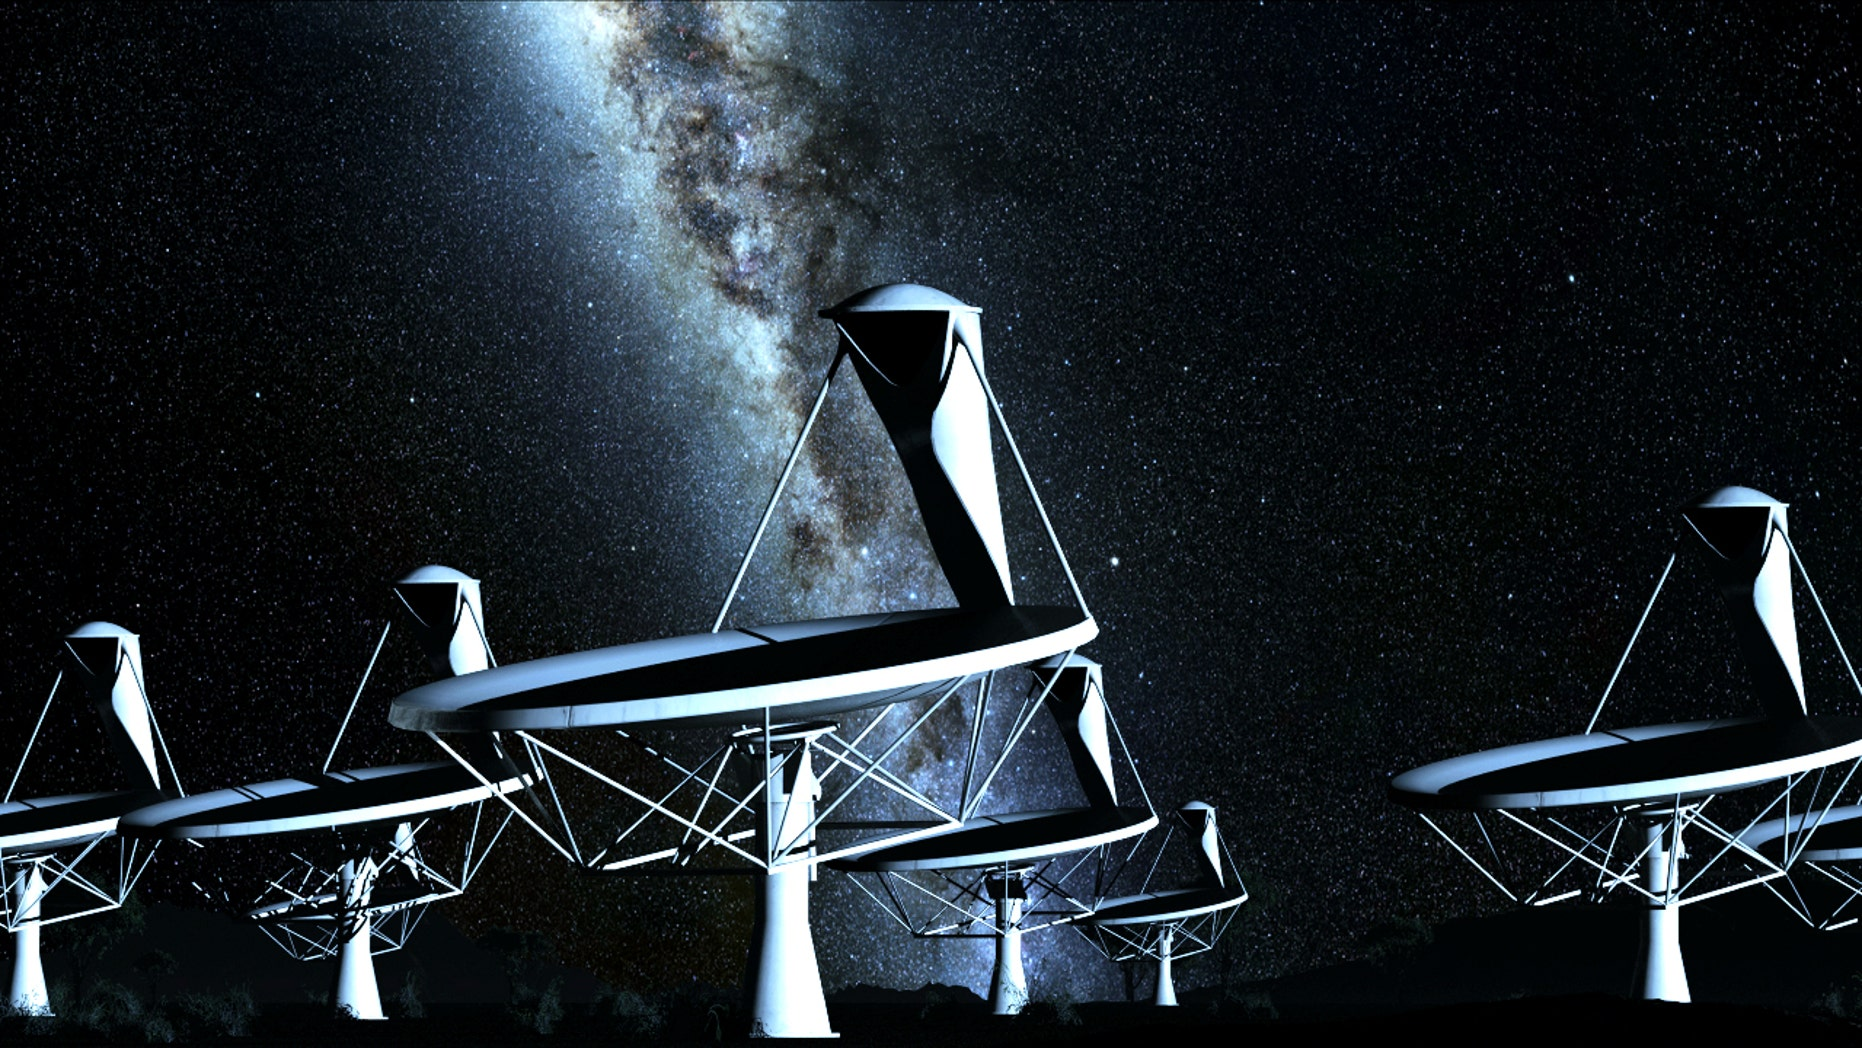 An artist's impression of the radio dishes that would make up the Square Kilometer Array, planned to be the world's biggest and most sensitive telescope and part of the quest for exterrestrial life..